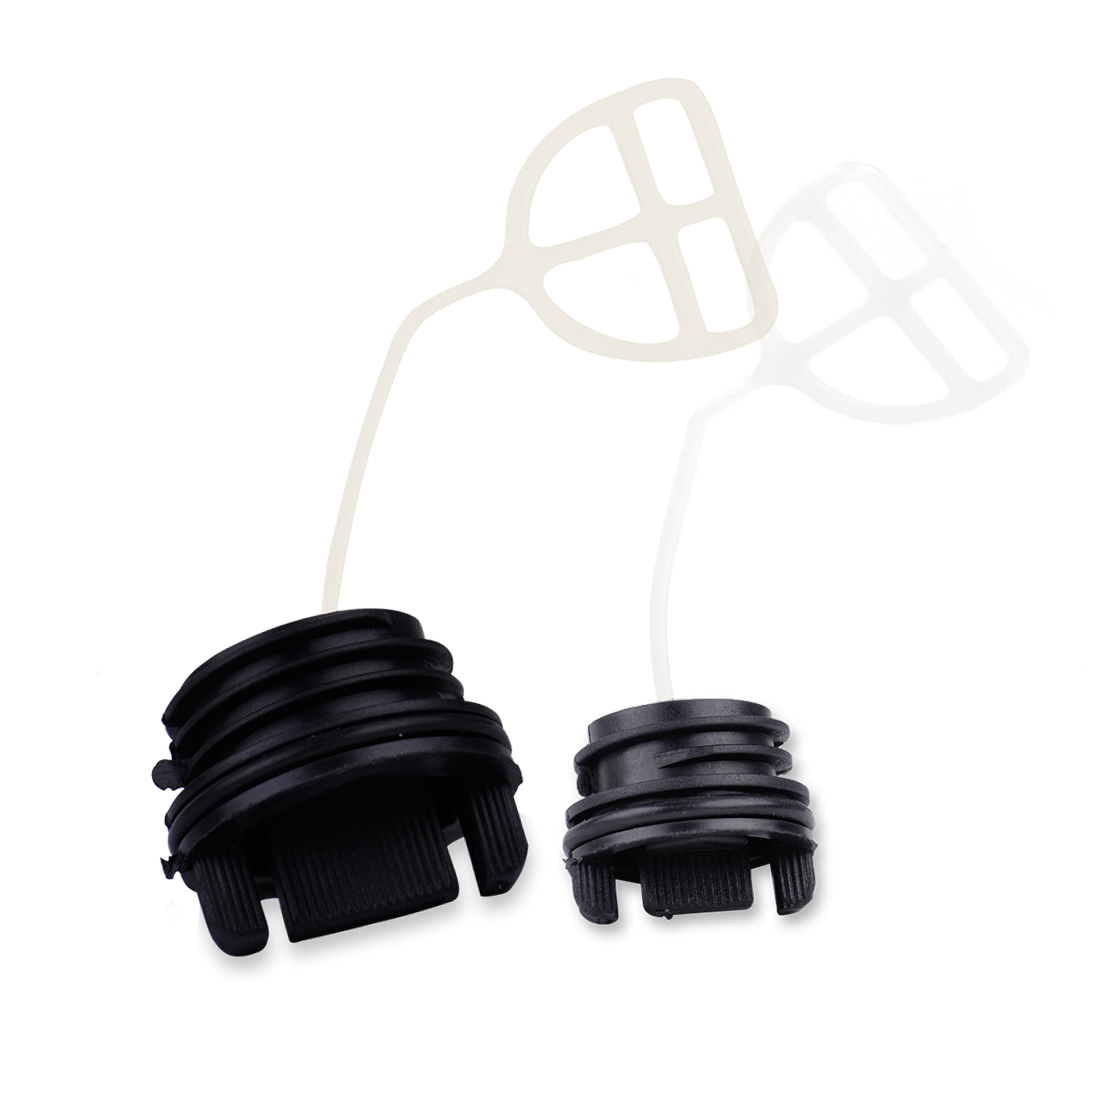 LETAOSK New Chainsaw Gas Fuel Oil Cap & Fuel Tank Cap Set Replacement fit for Husqvarna 50 51 55 136 137 141 142 254 Chainsaw-in Tool Parts from Tools